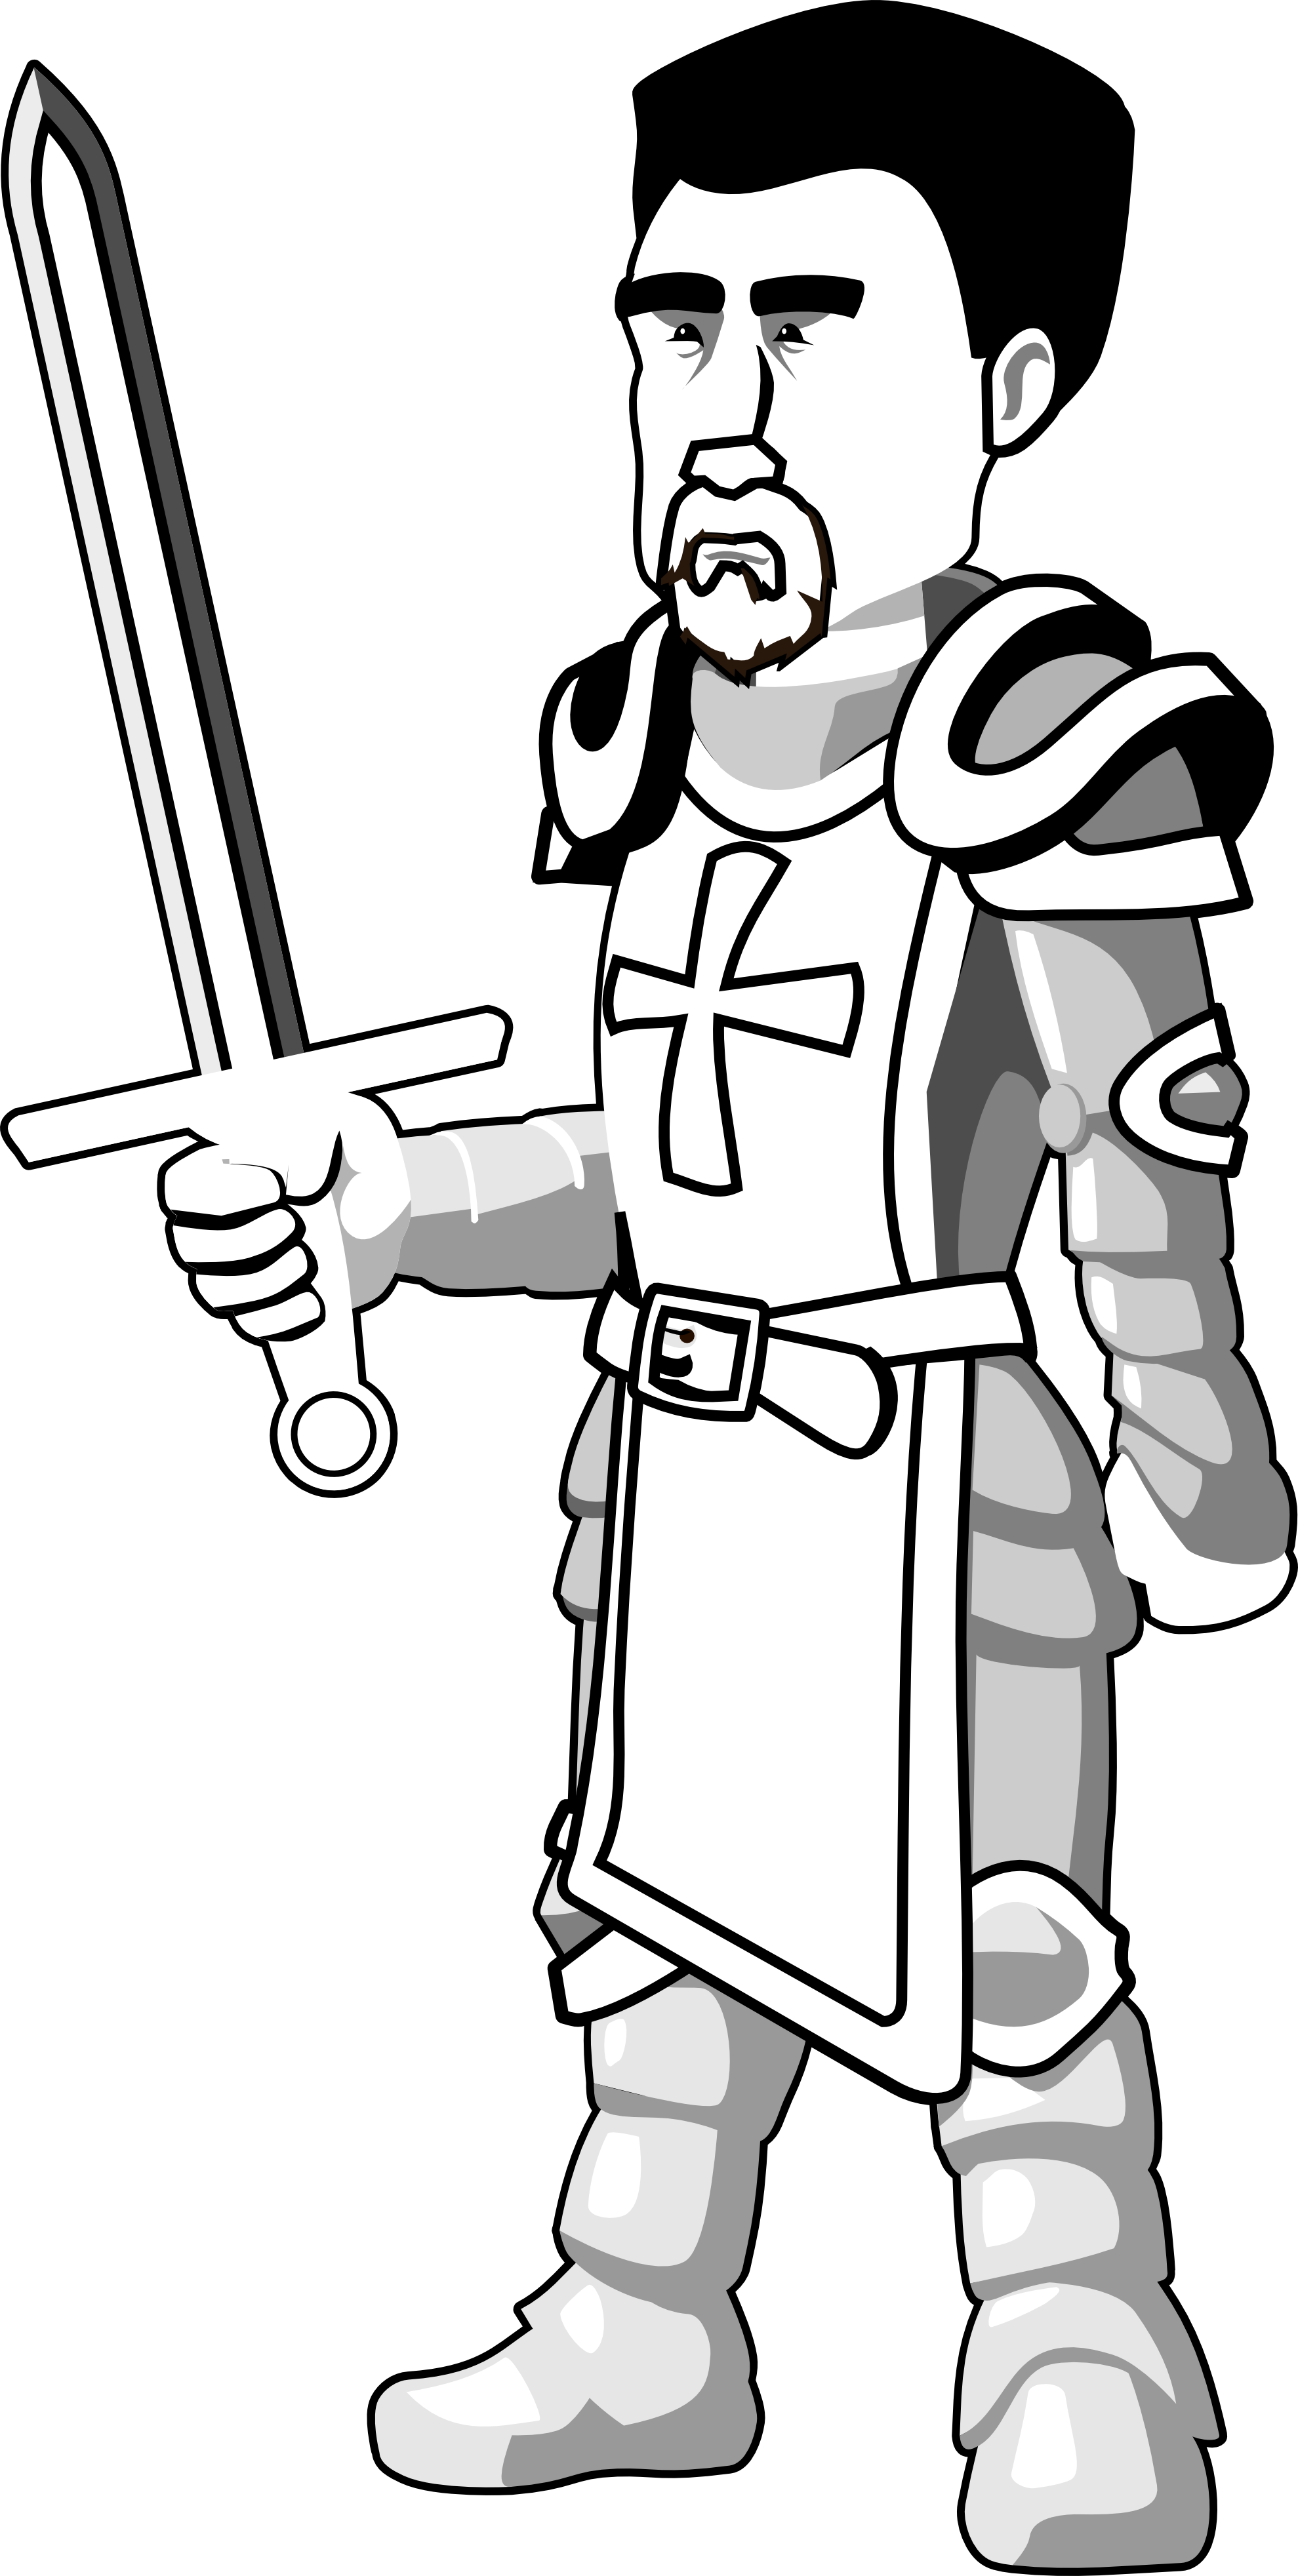 knight medieval kingdom legendary armored knight warrior.